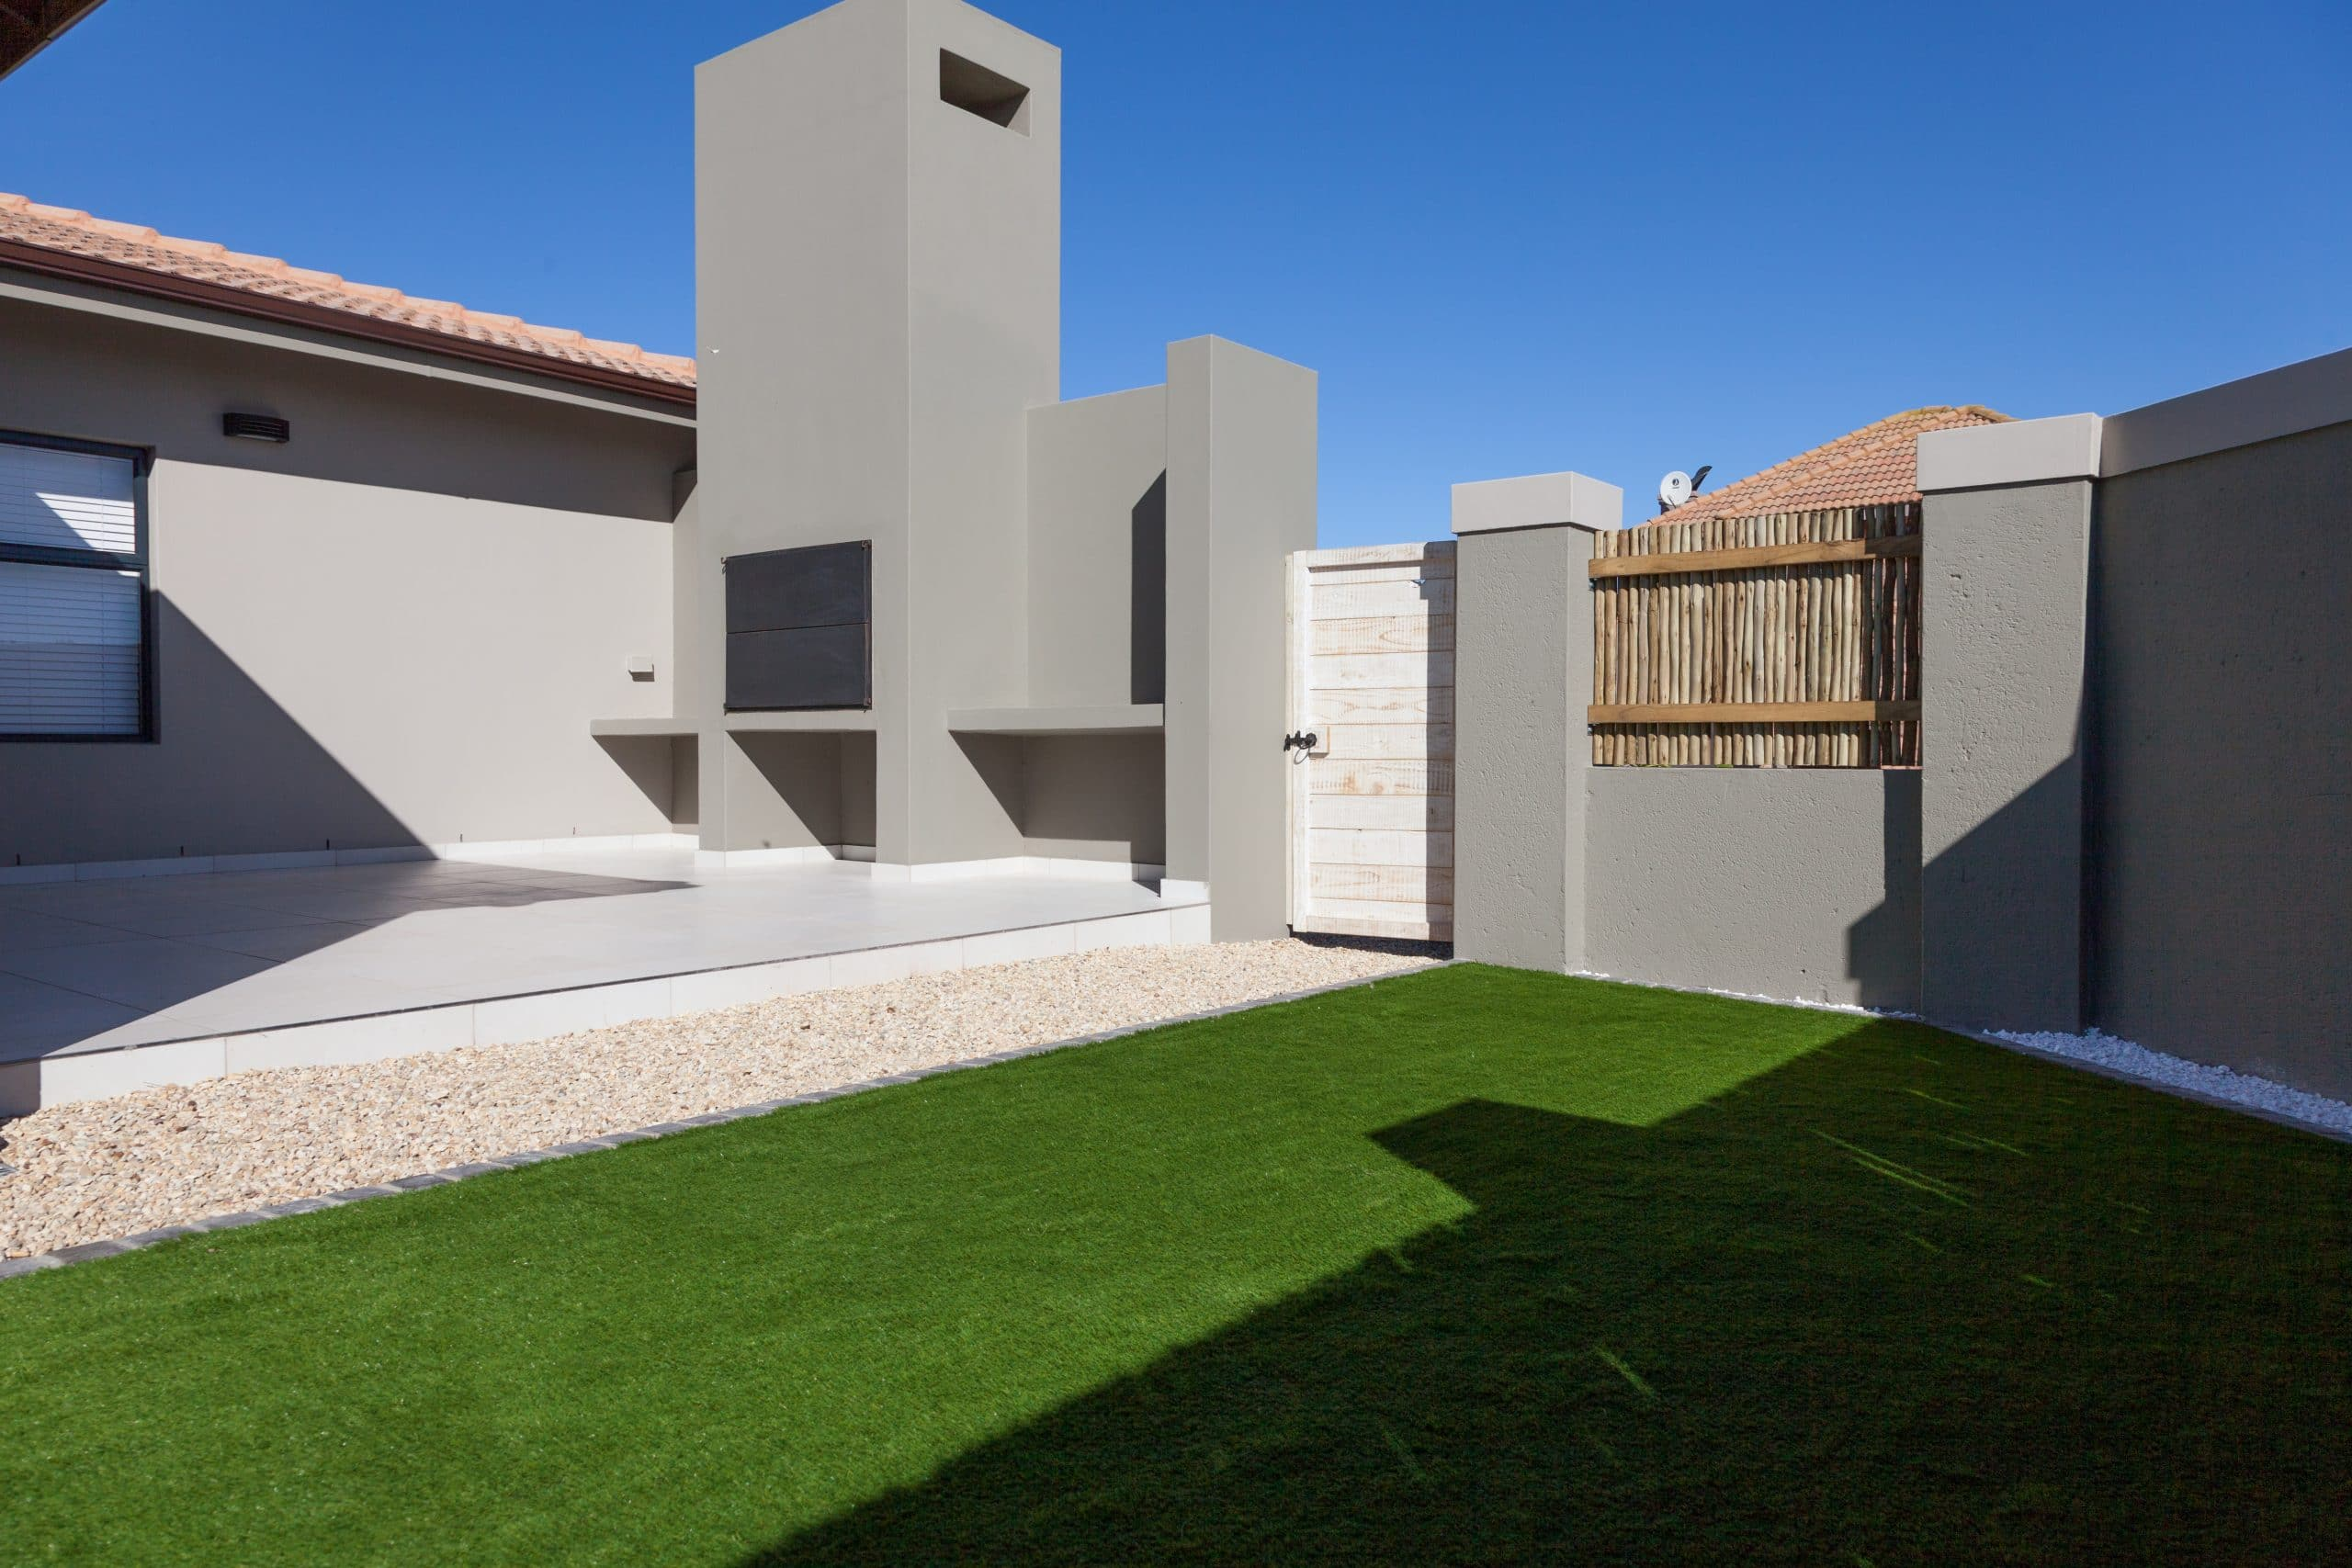 artificial lawn with white washed wooden gate in estate